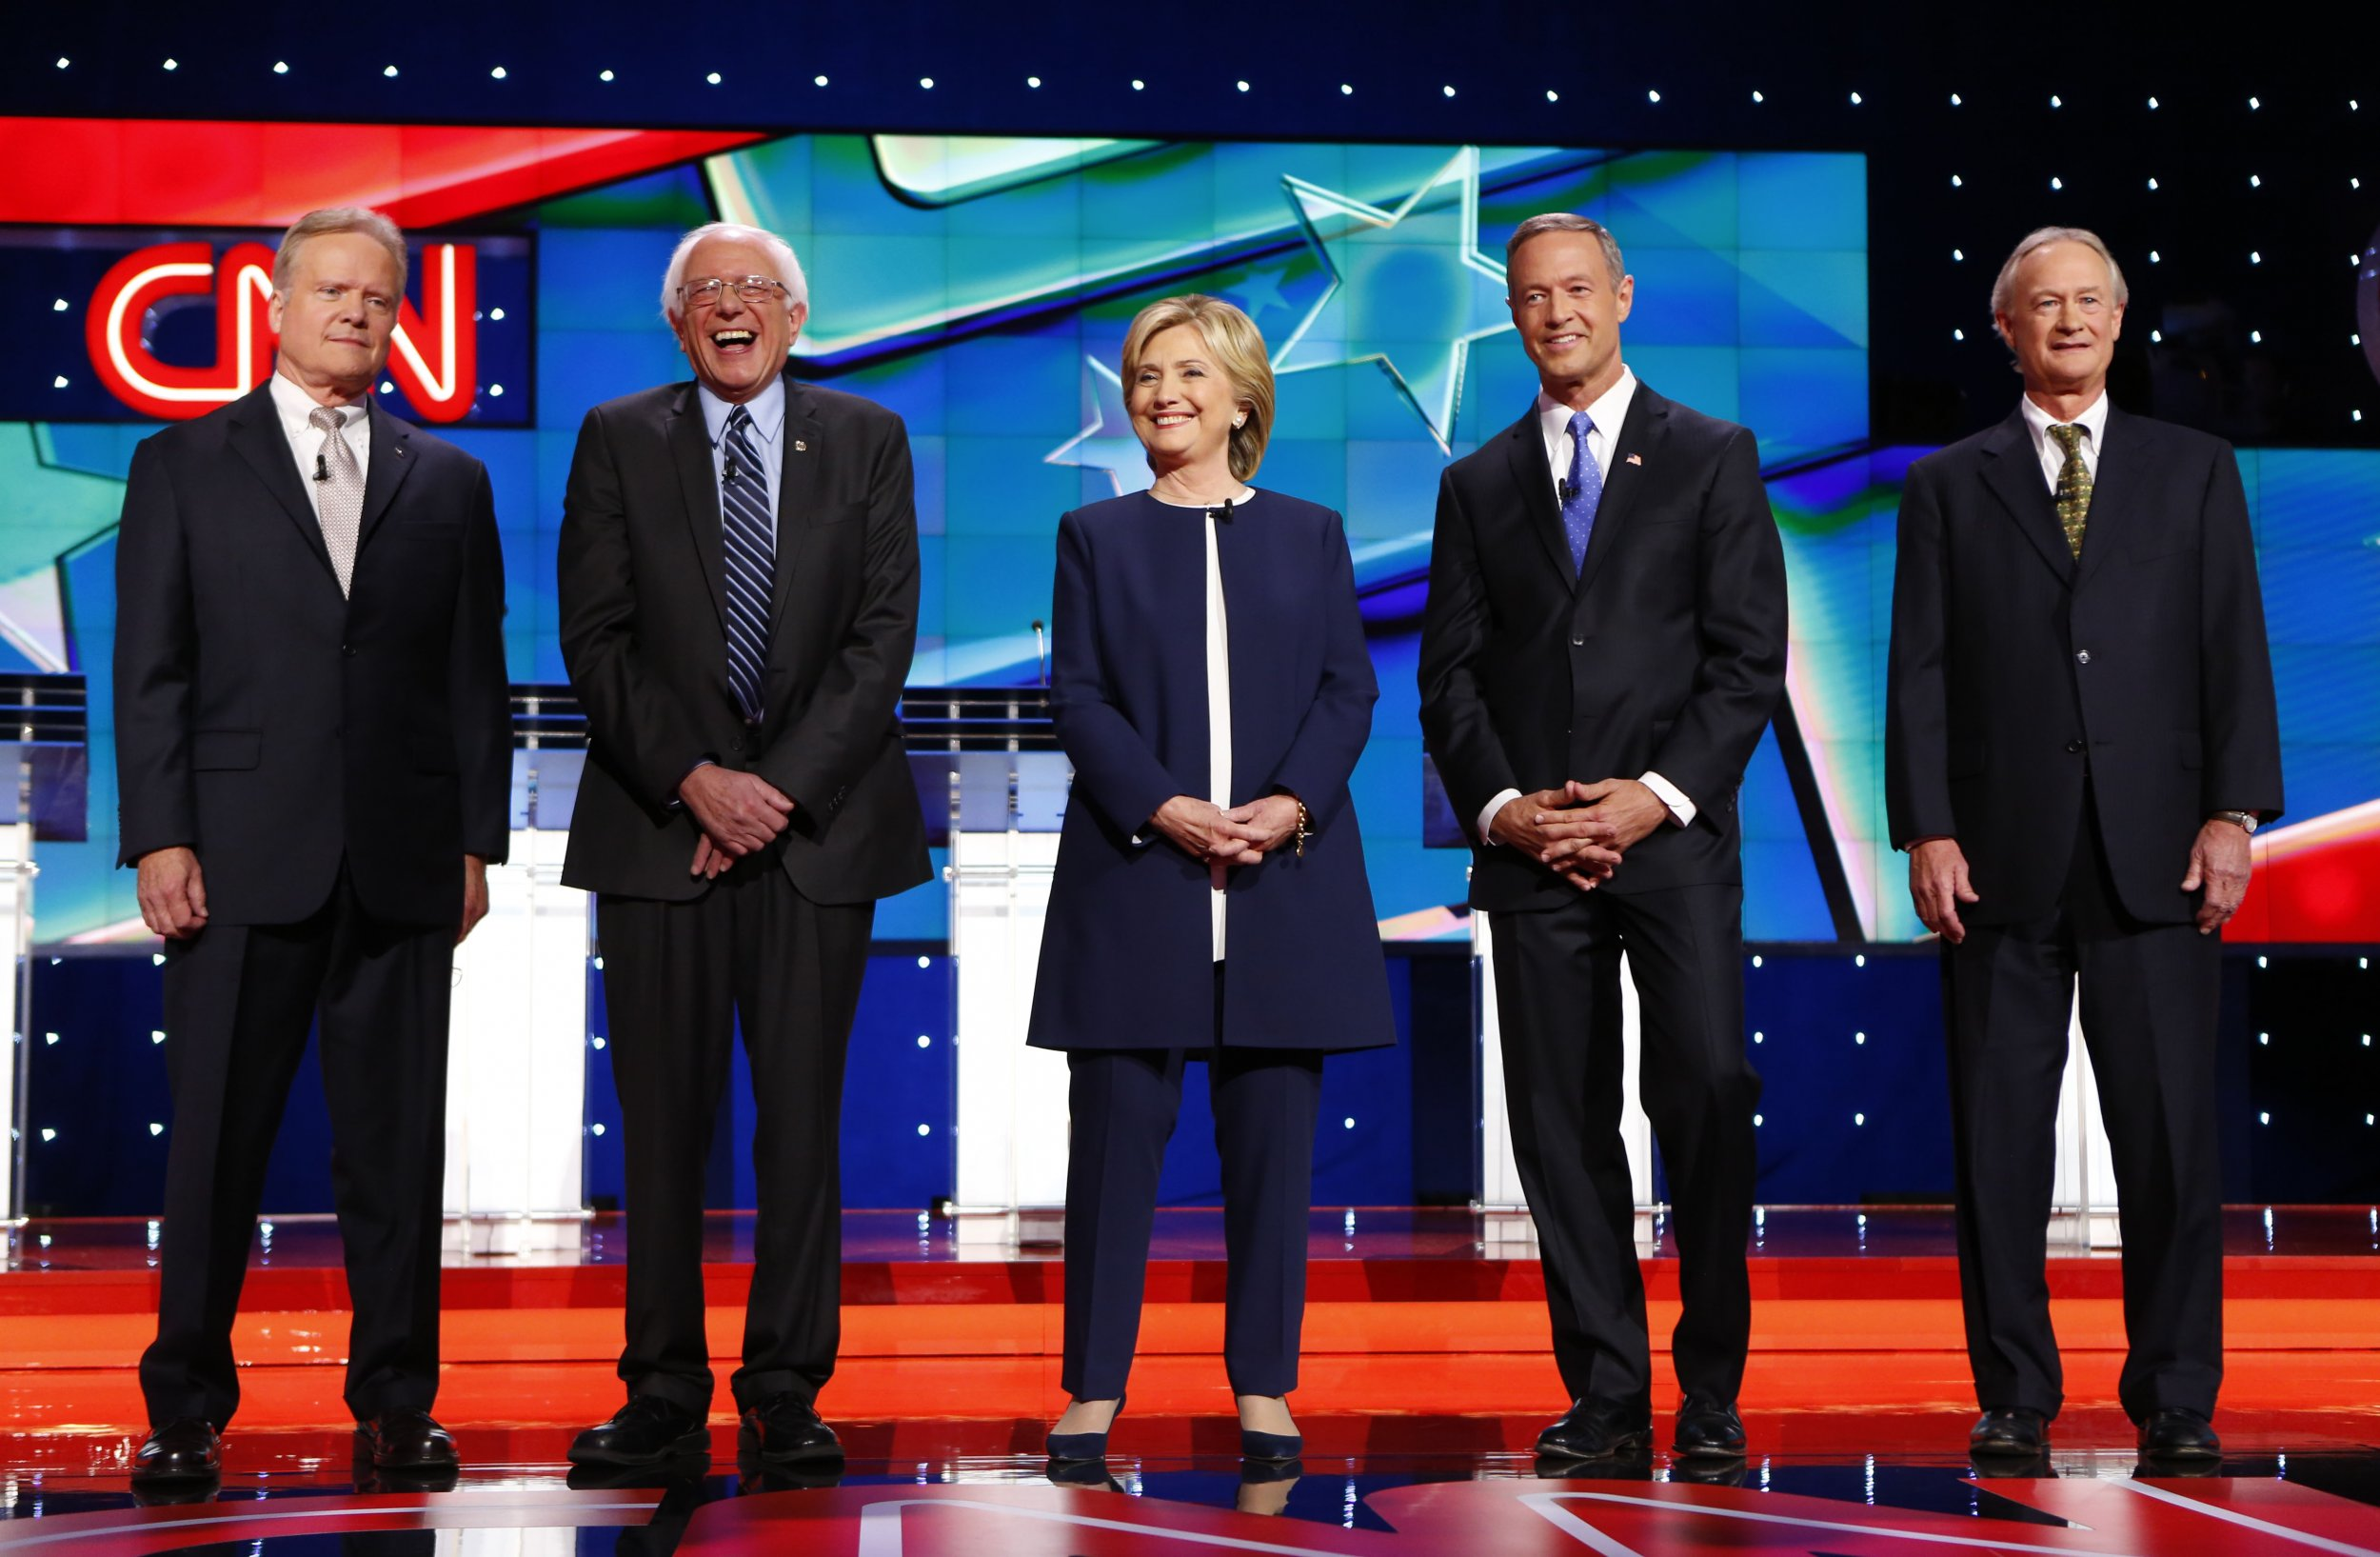 who won the dem debate how unbelievers saw it